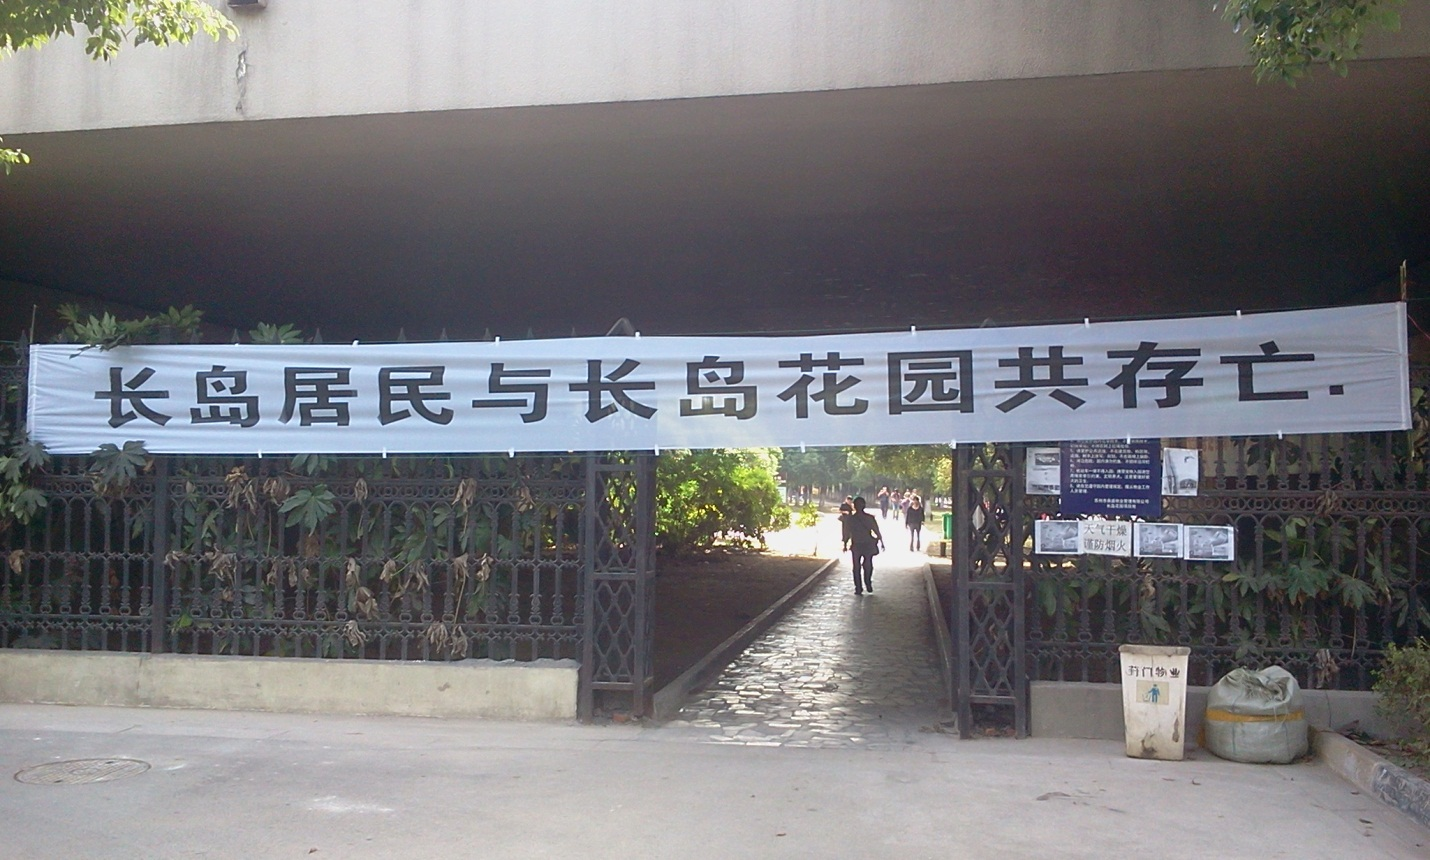 """""""Changdao Residents Live and Die with Changdao Garden""""—banner by residents who fought to preserve green space in housing complex. Suzhou, Jiangsu Province, October 2012. Photo credit: Zheng Jianwei."""